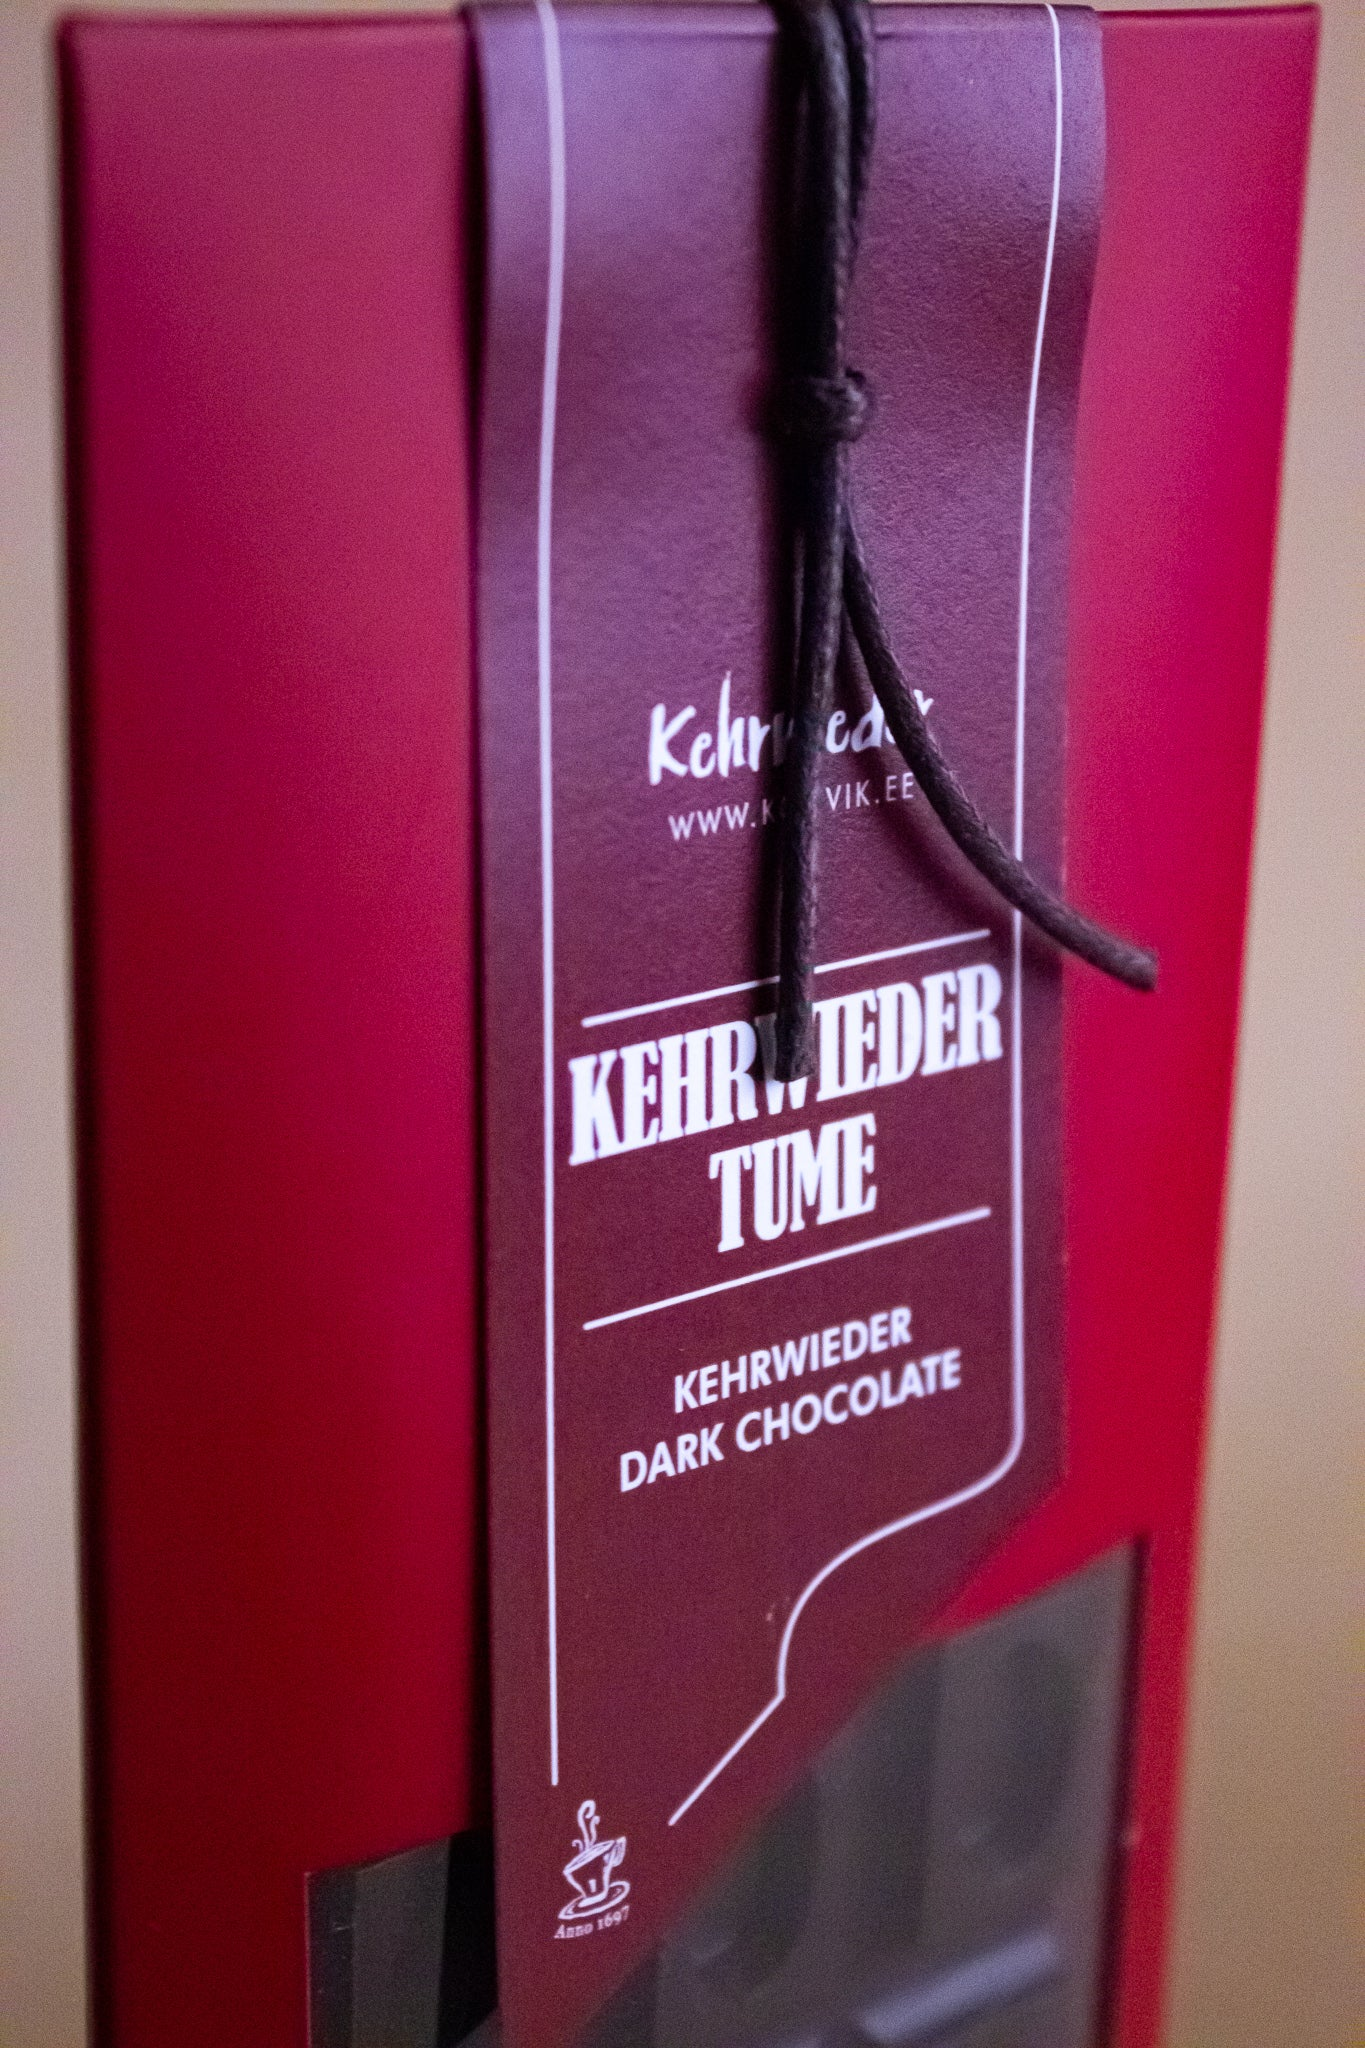 Kehrwieder Dark Chocolate